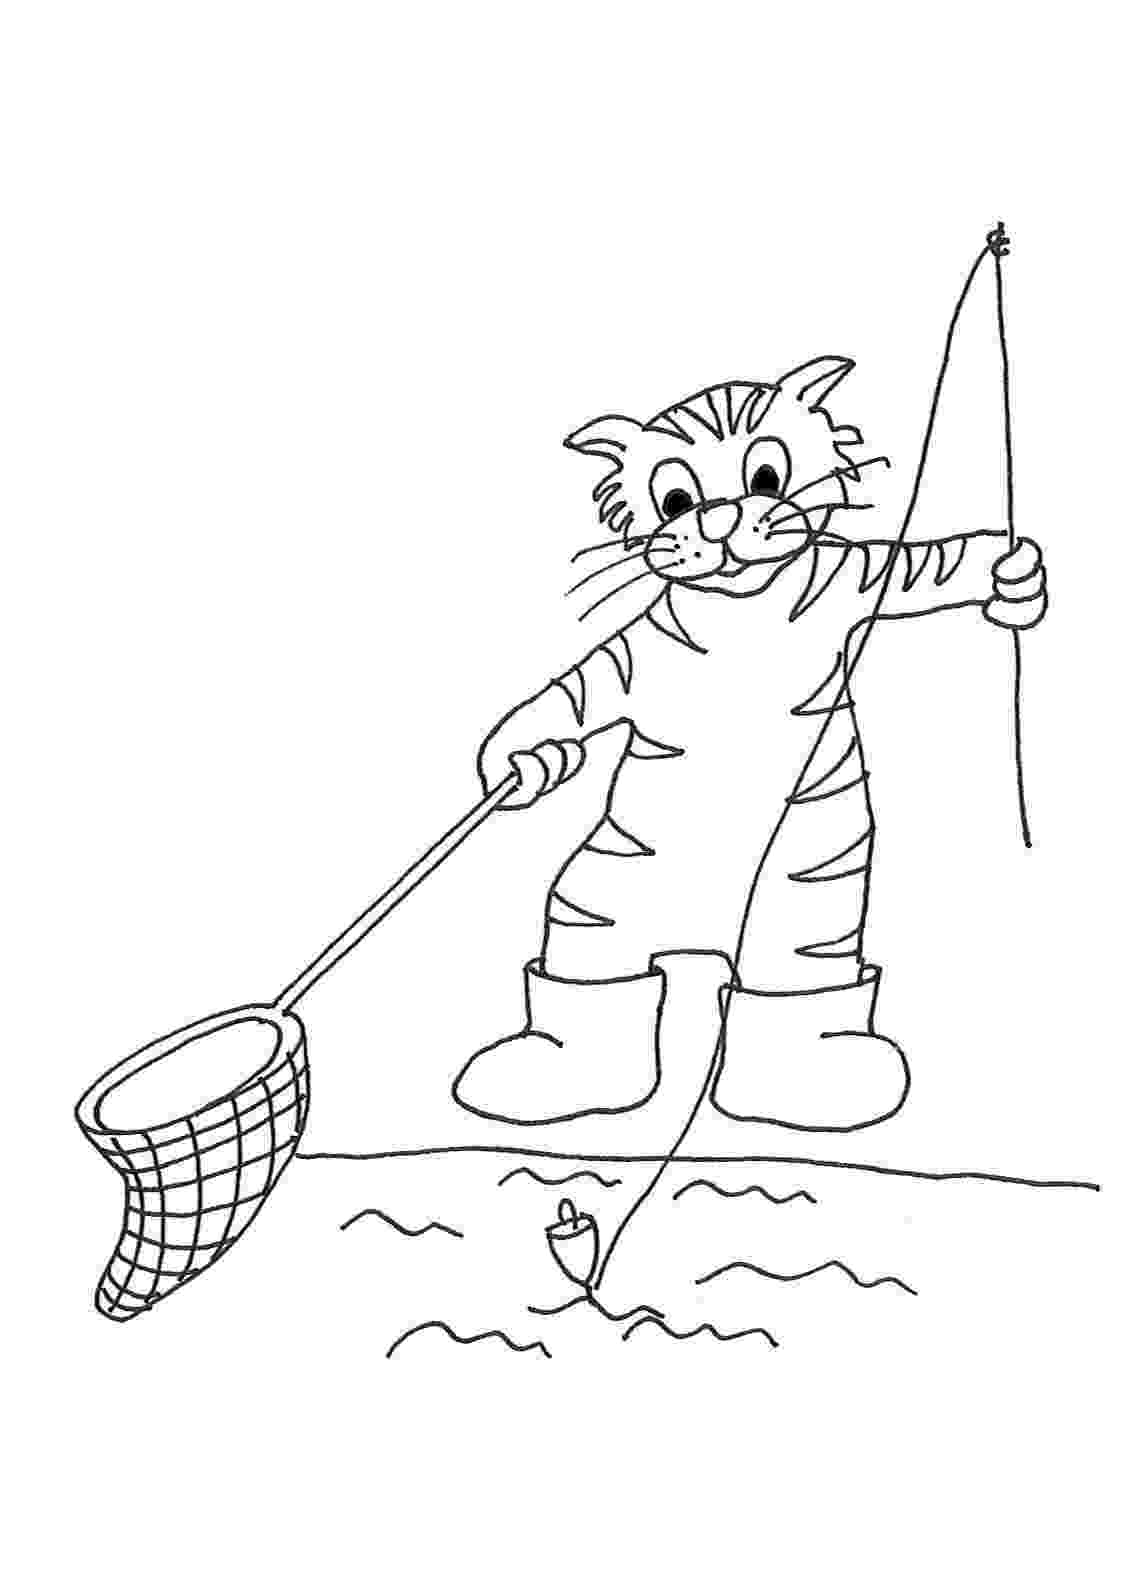 cat coloring pages to print free printable cat coloring pages for kids pages print coloring cat to